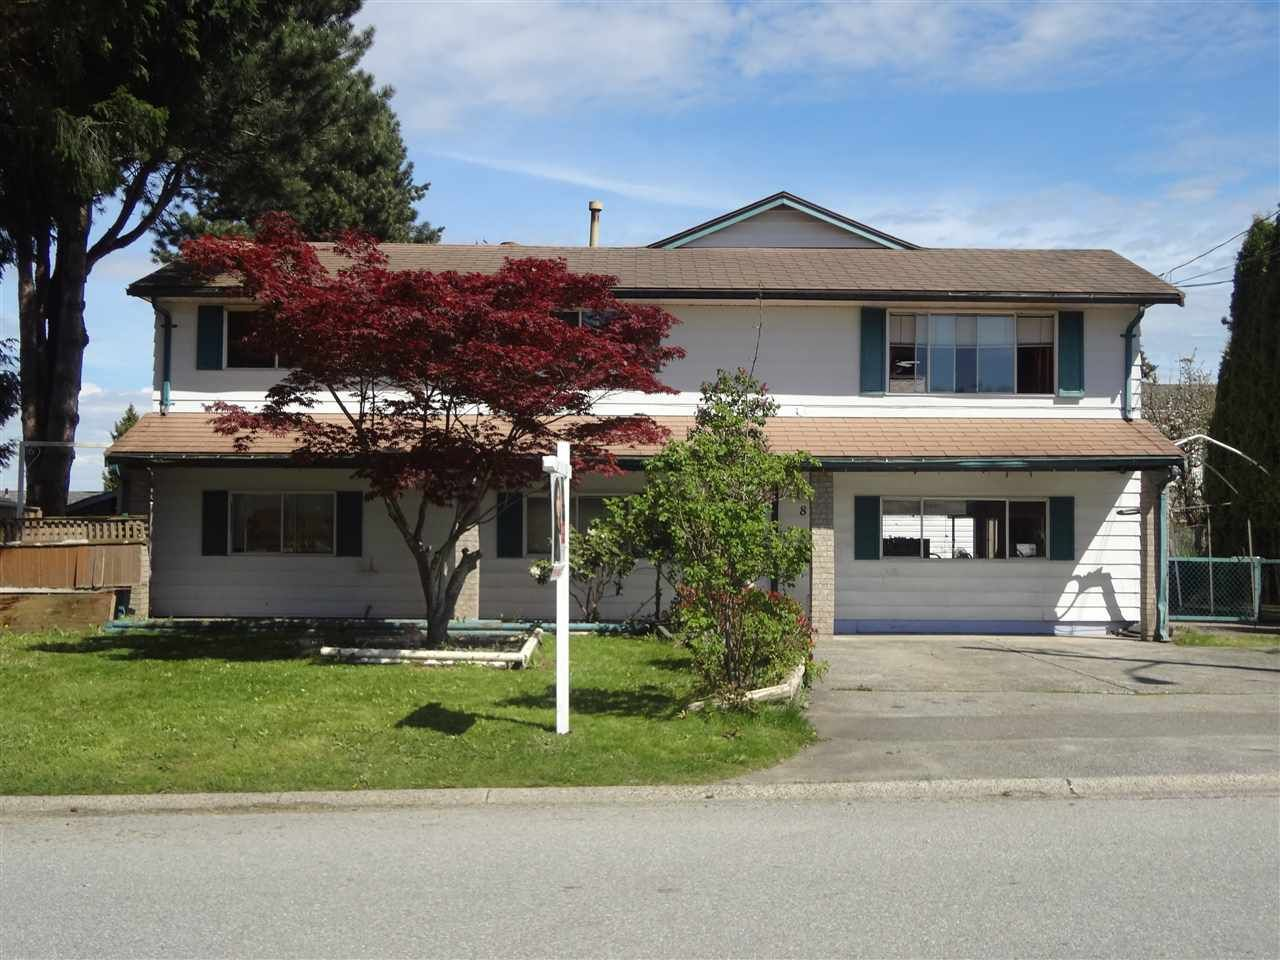 Main Photo: 8194 134 STREET in Surrey: Queen Mary Park Surrey House for sale : MLS®# R2161485